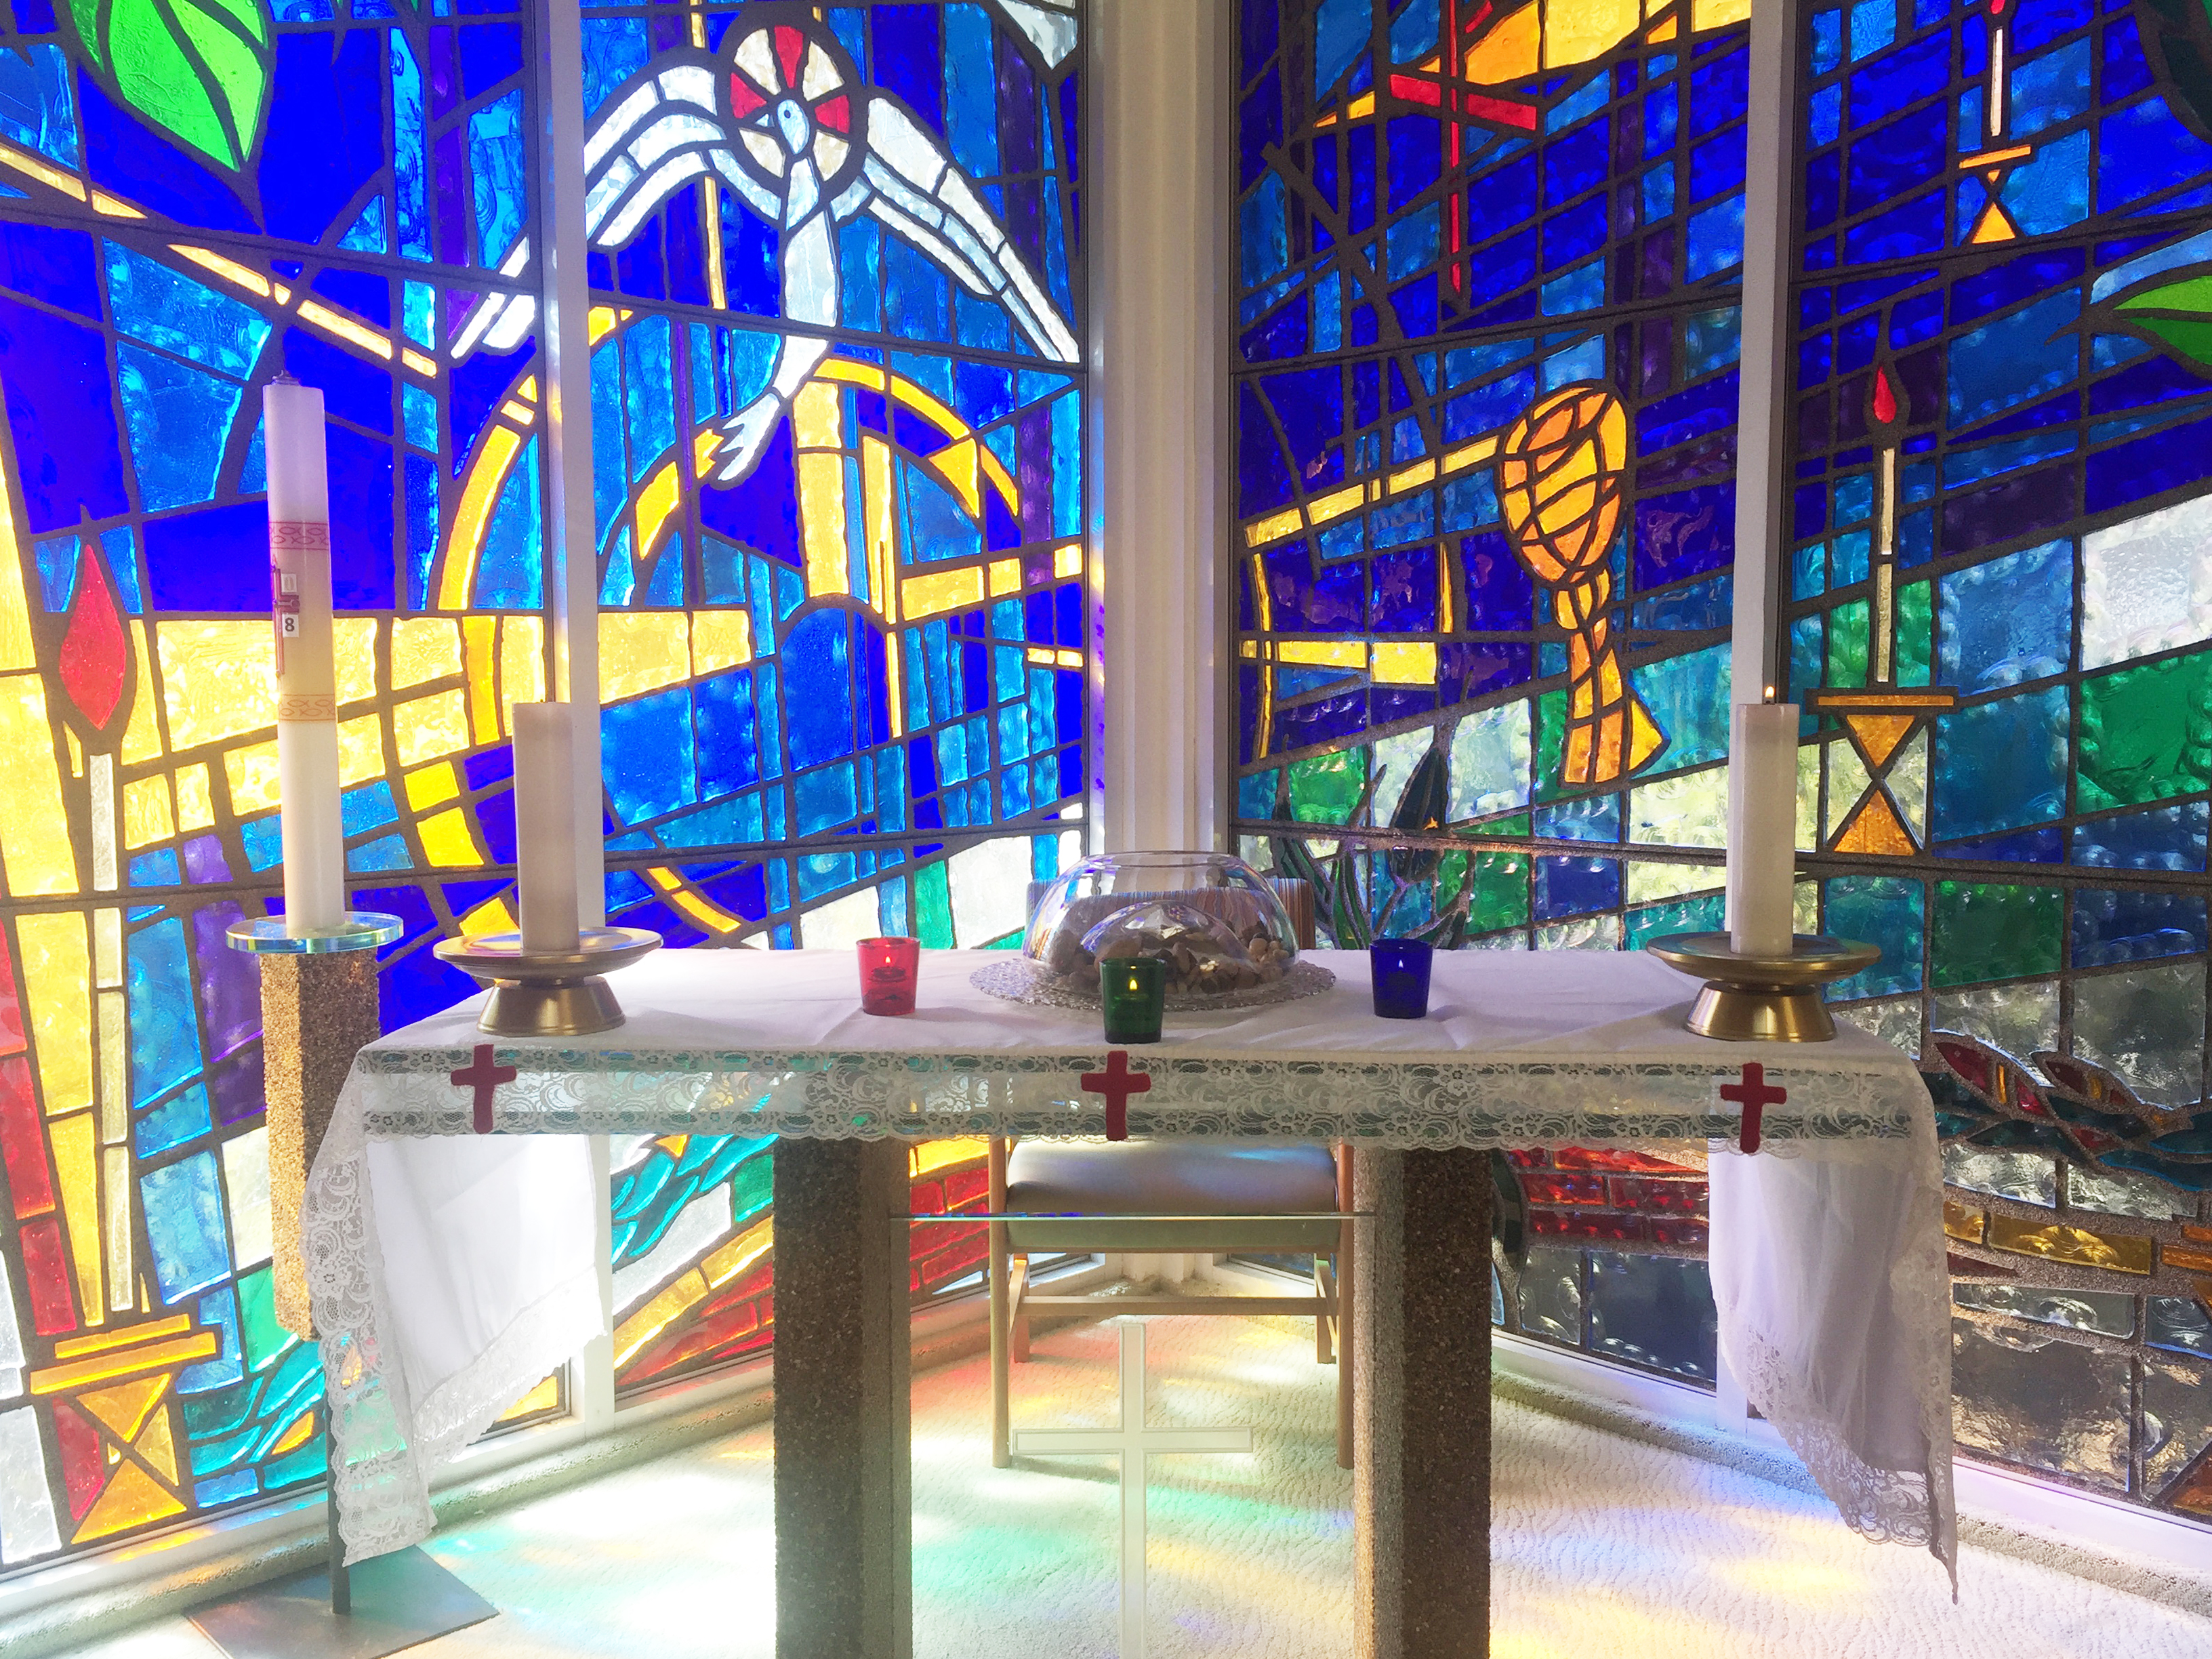 Inside the light-filled chapel at St. Vincent's: Langara. For years, monthly memorial services were held in this room, but they have recently moved to the larger and more accessible dining room.